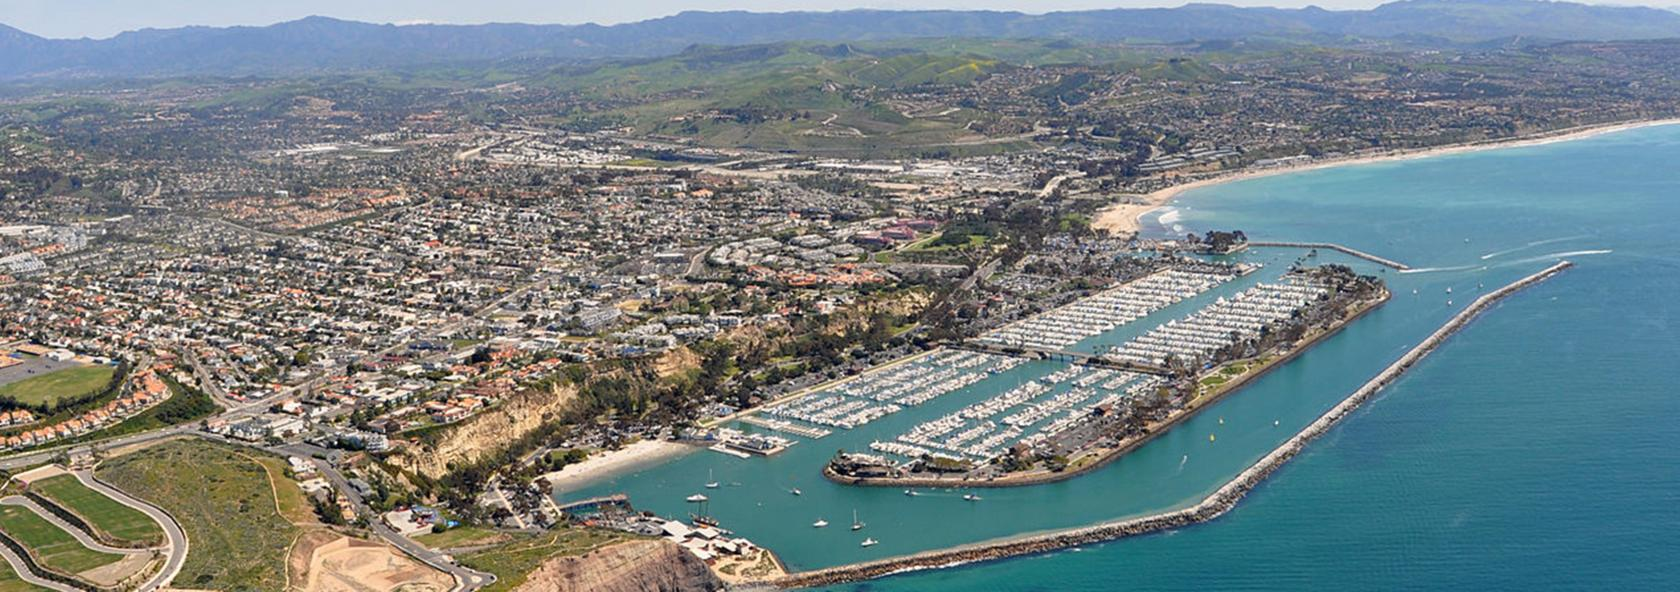 Aerial photograph of Dana Point